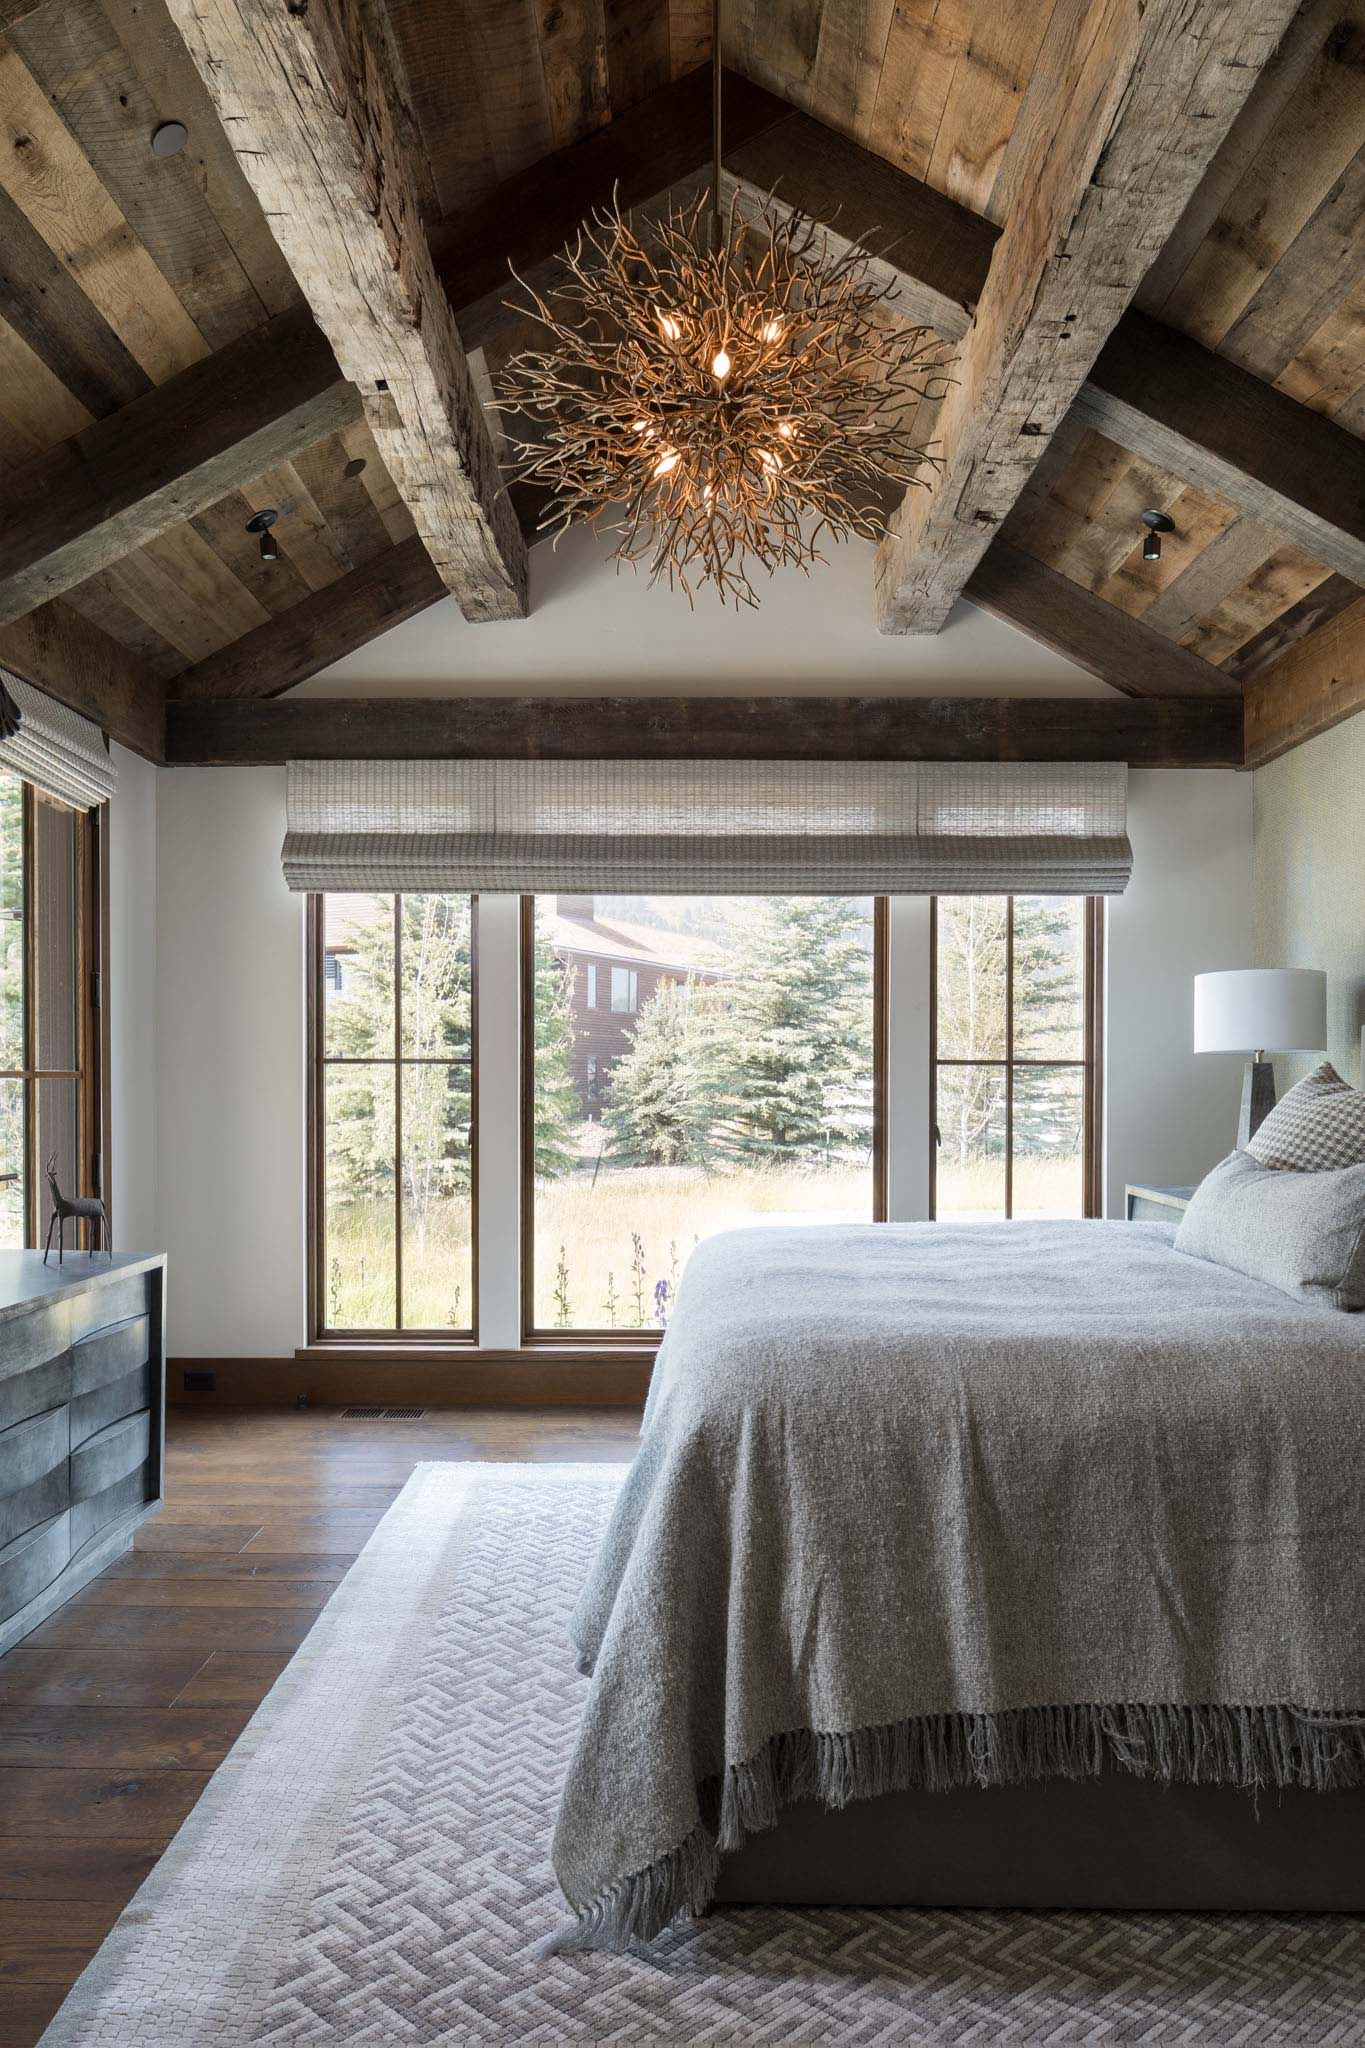 Delightful rustic home in Wyoming with a dramatic mountain backdrop #mountainhomes